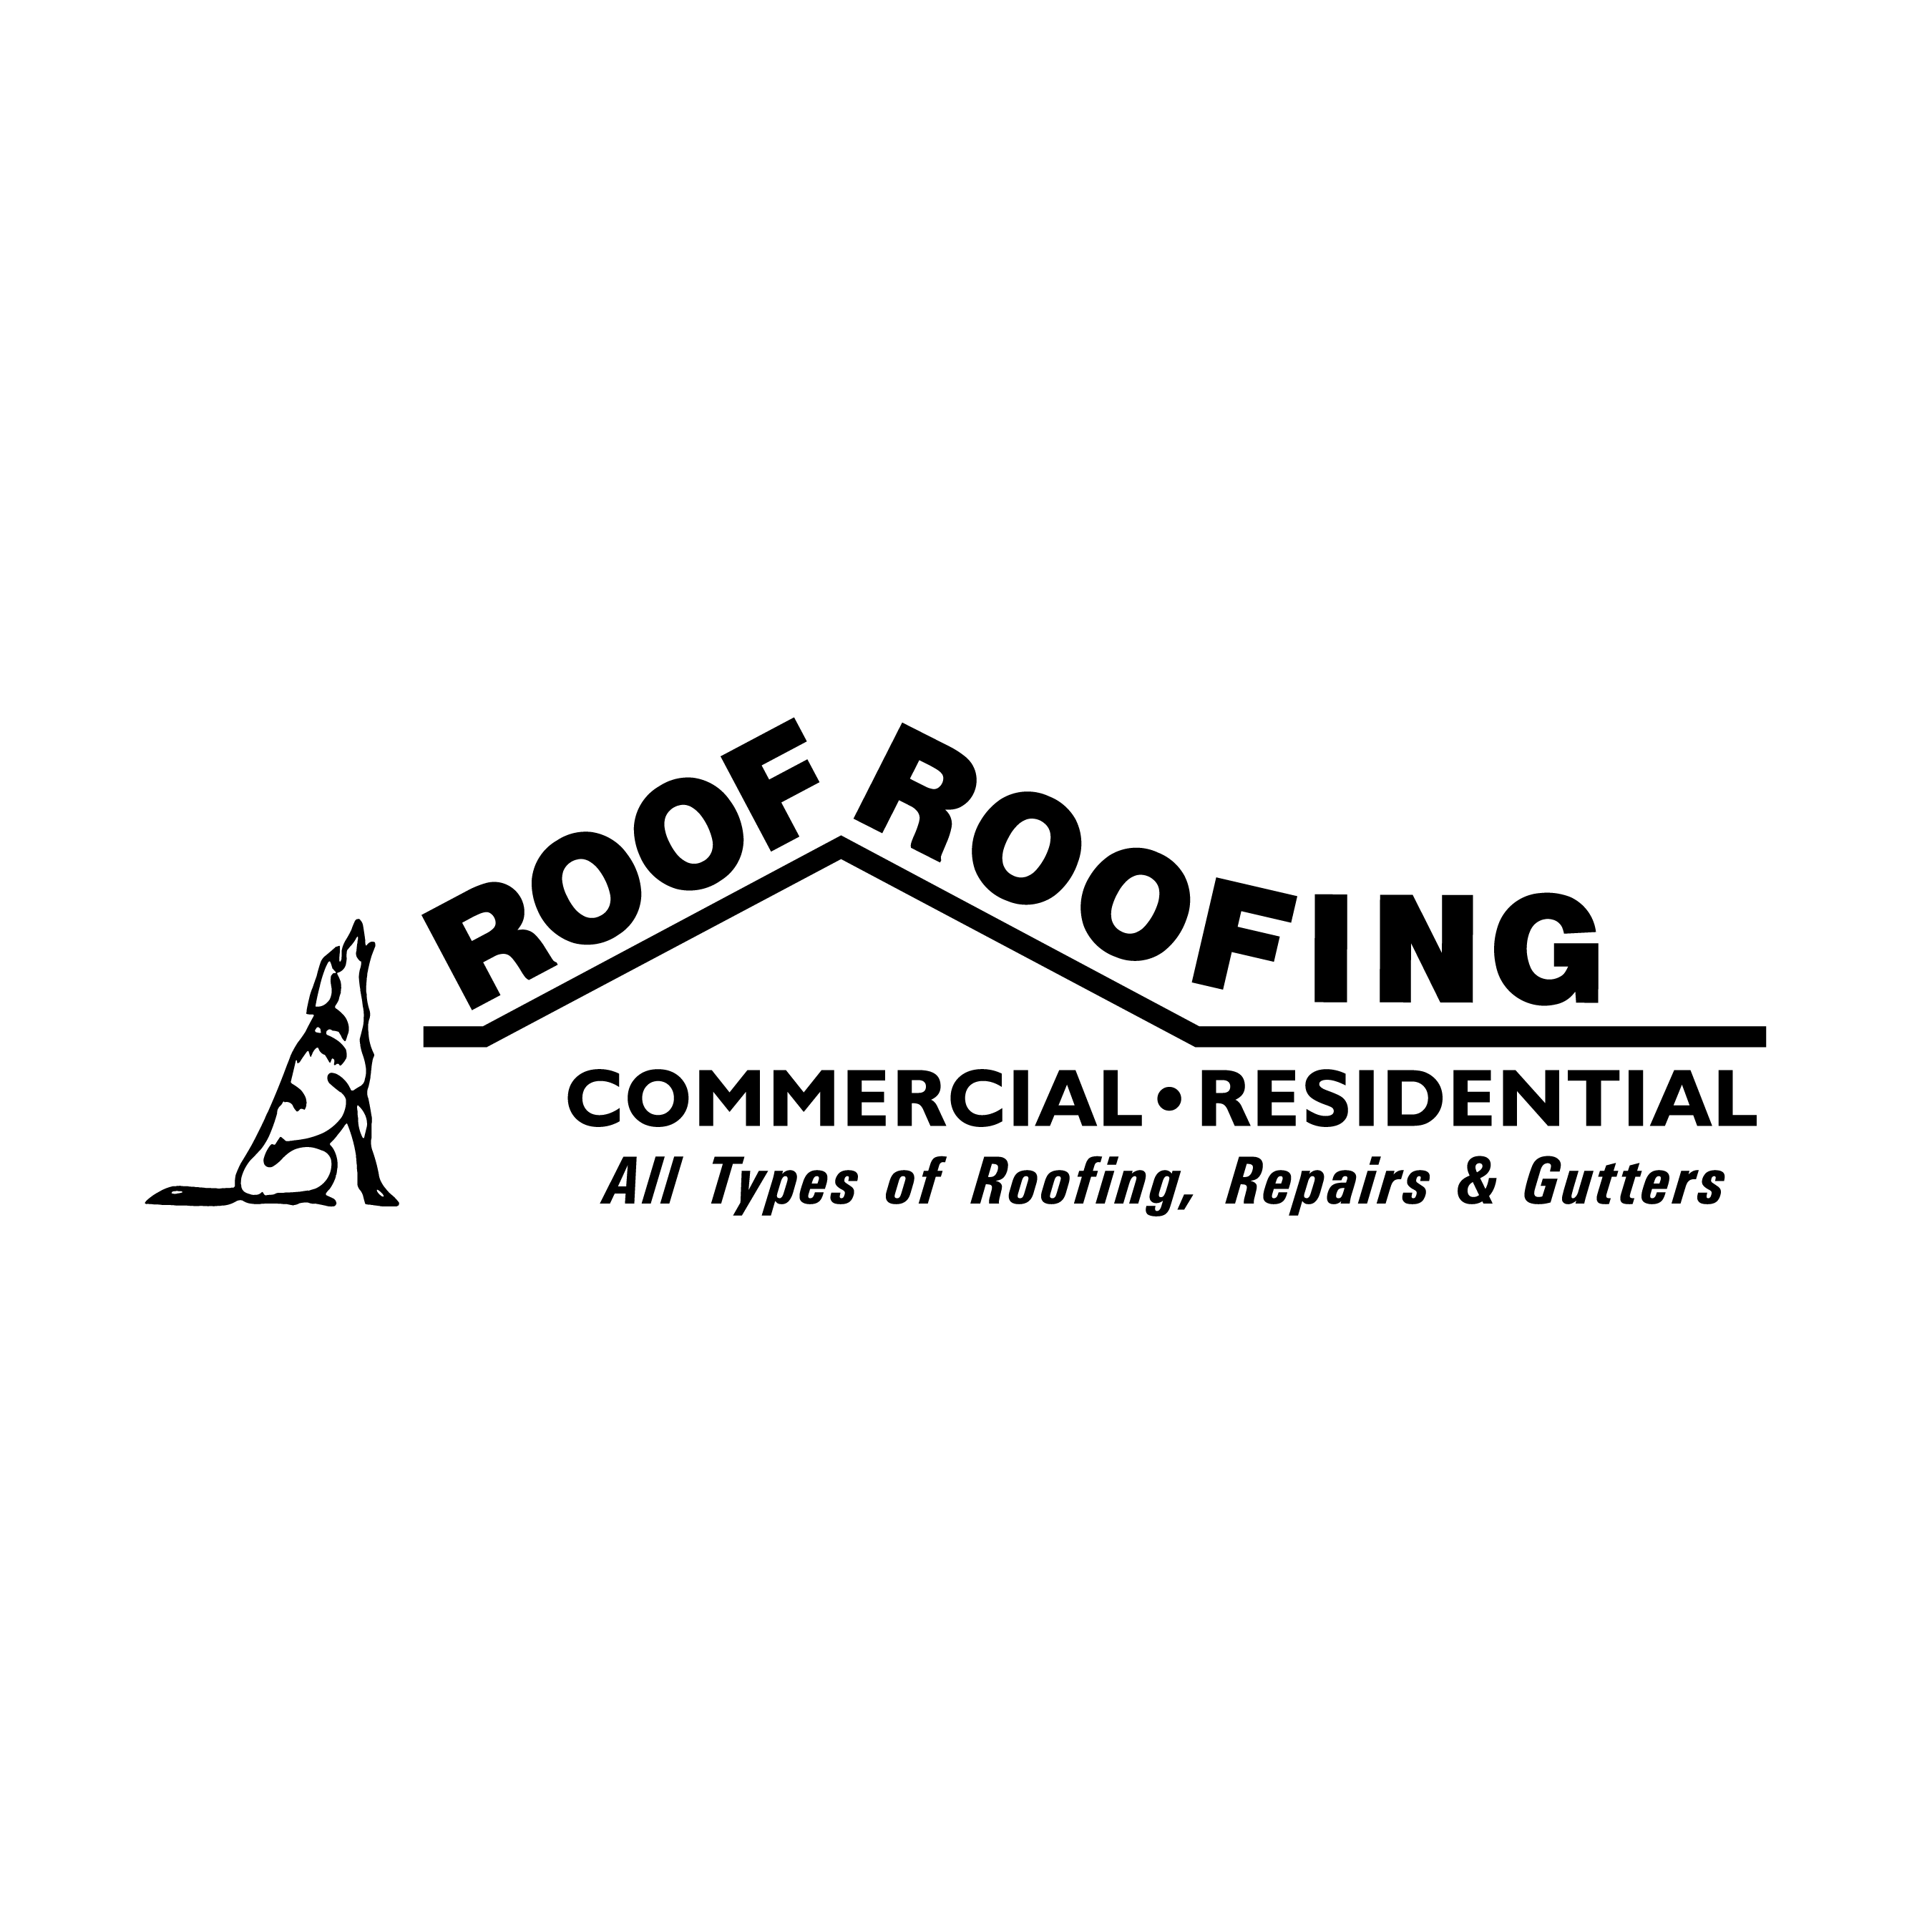 Roof Roofing Inc - San Jose, CA 95118 - (408)265-9270 | ShowMeLocal.com